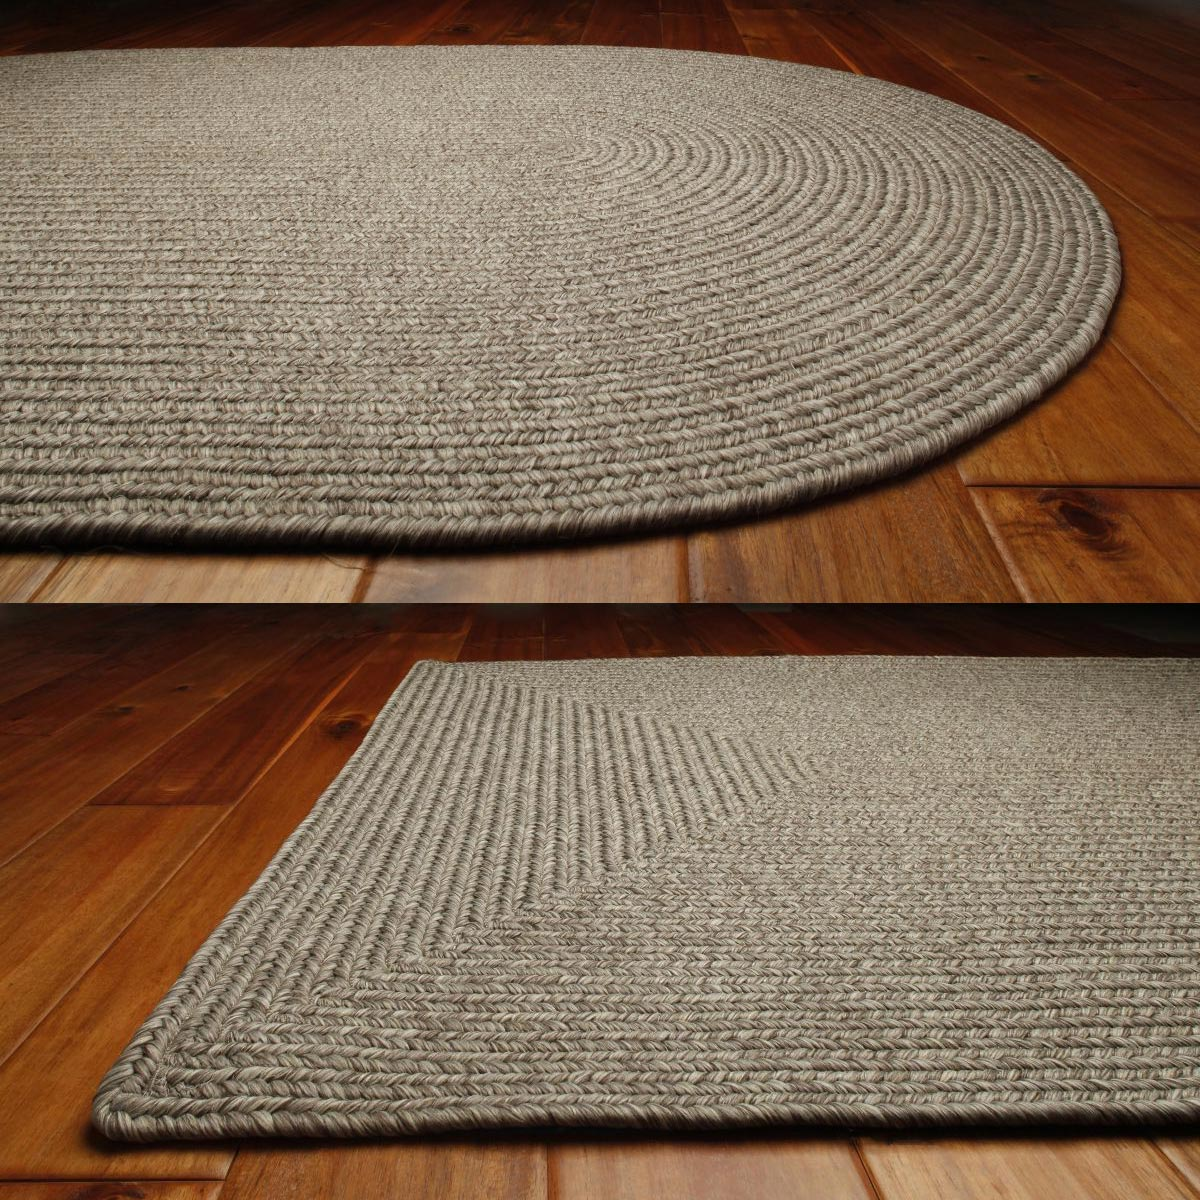 8x10 Indoor Outdoor Area Rugs: Solid Braided Area Rugs Indoor Outdoor Oval Rectangle